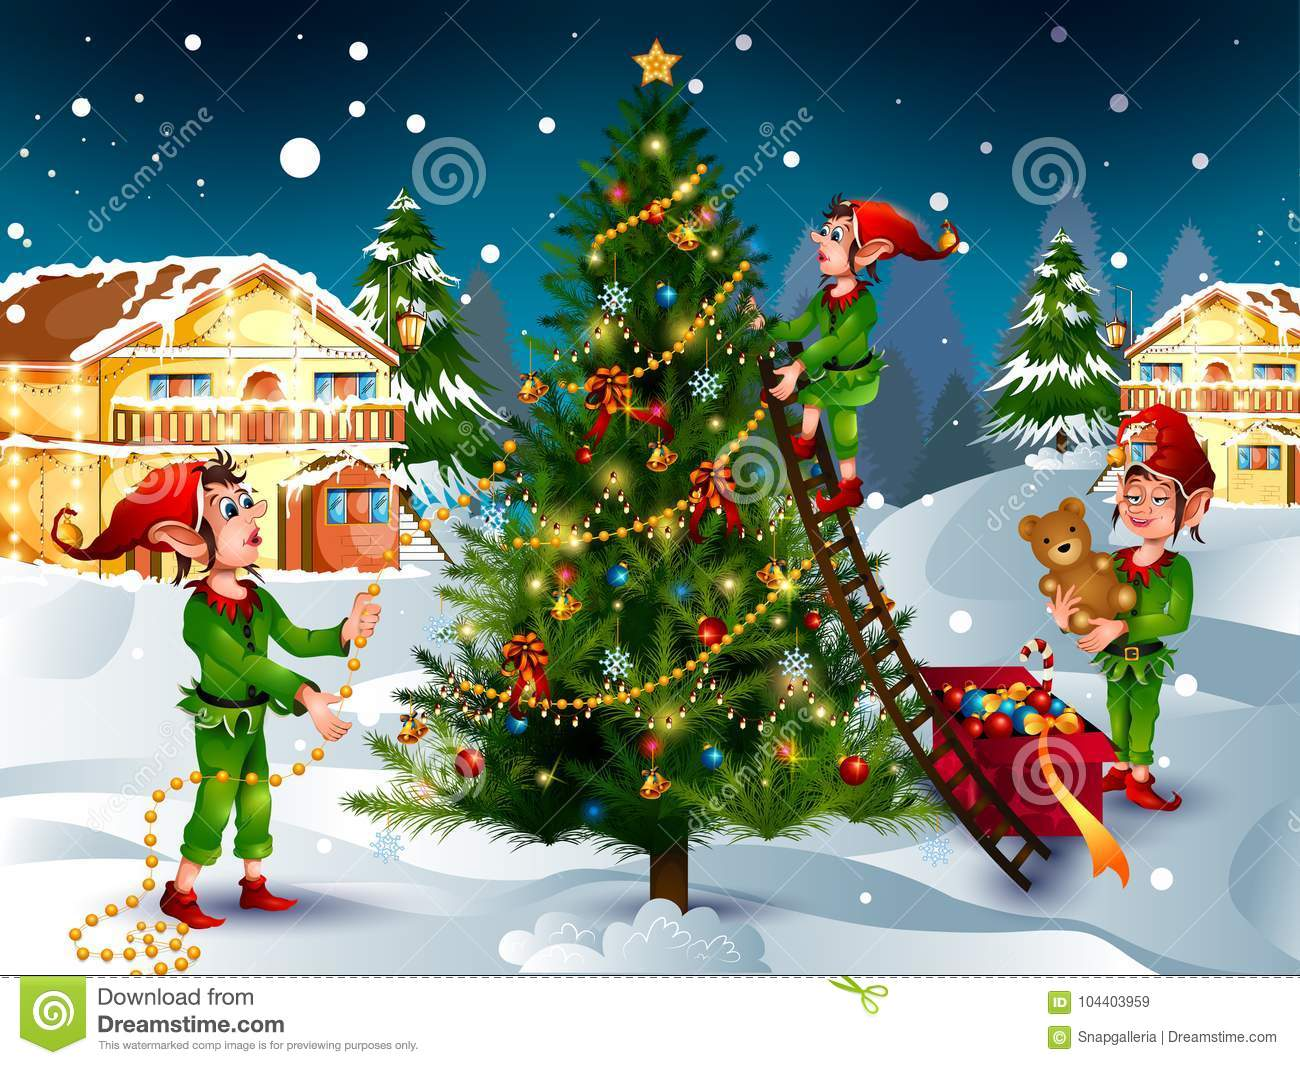 Elf with gift in winter background for Merry Christmas holiday celebration